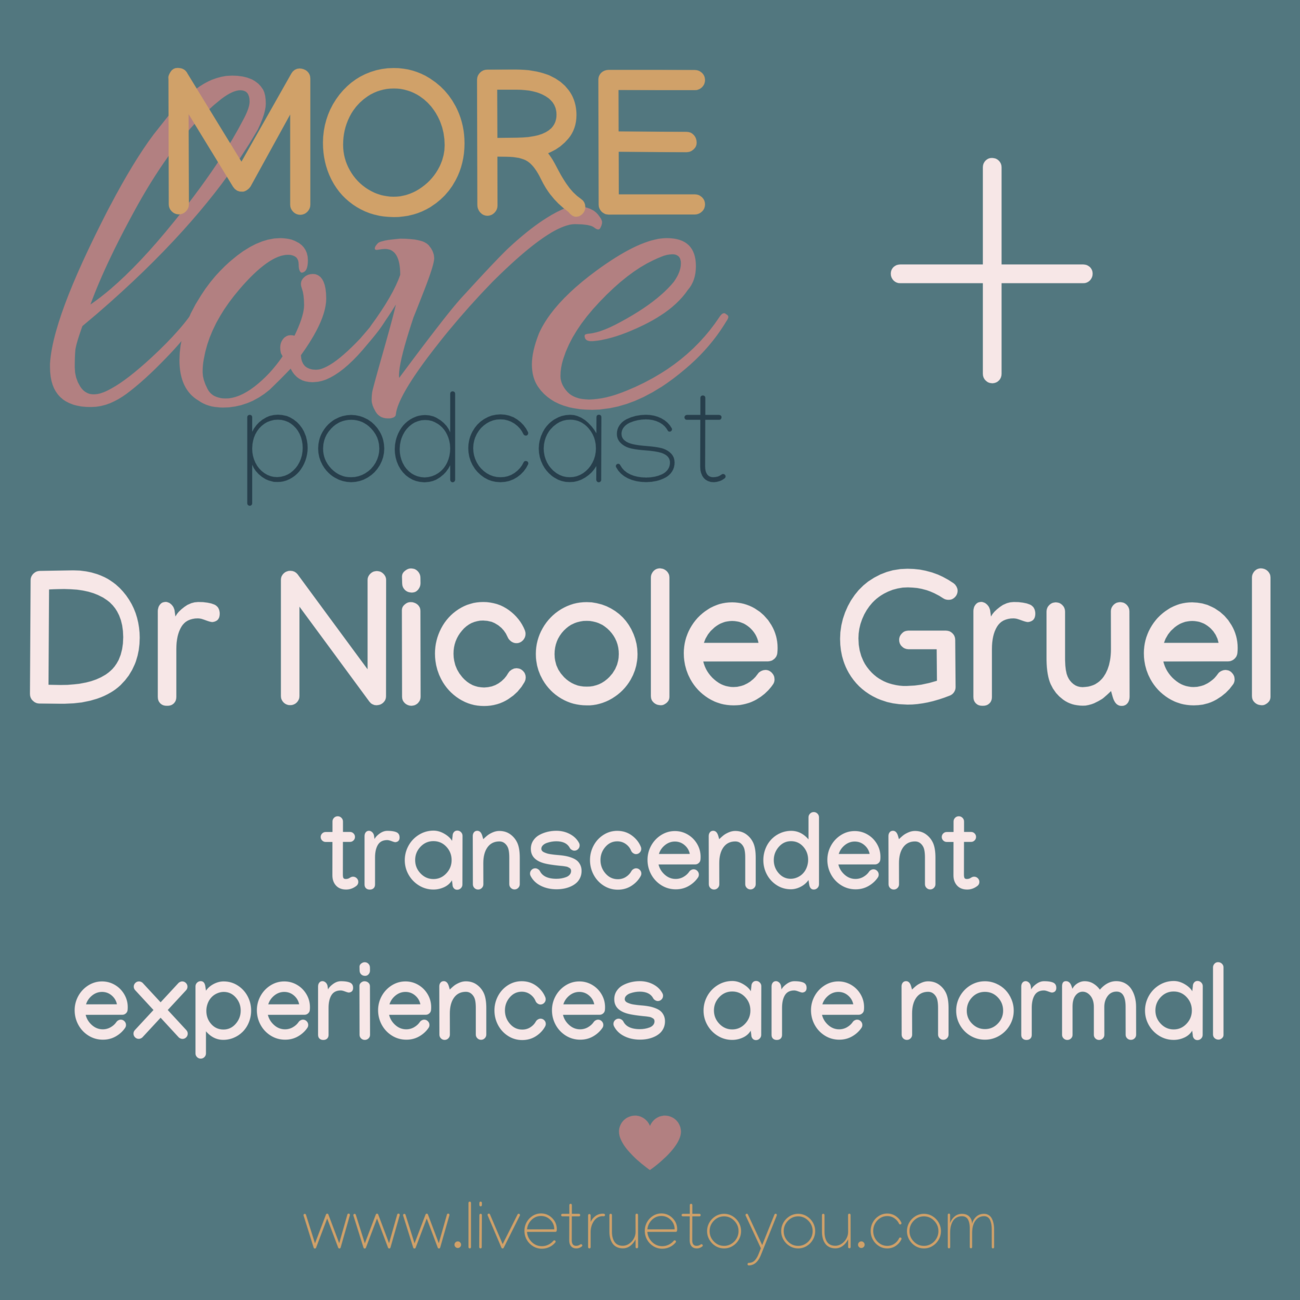 Dr Nicole Gruel on love, life force energy and transcendent experiences